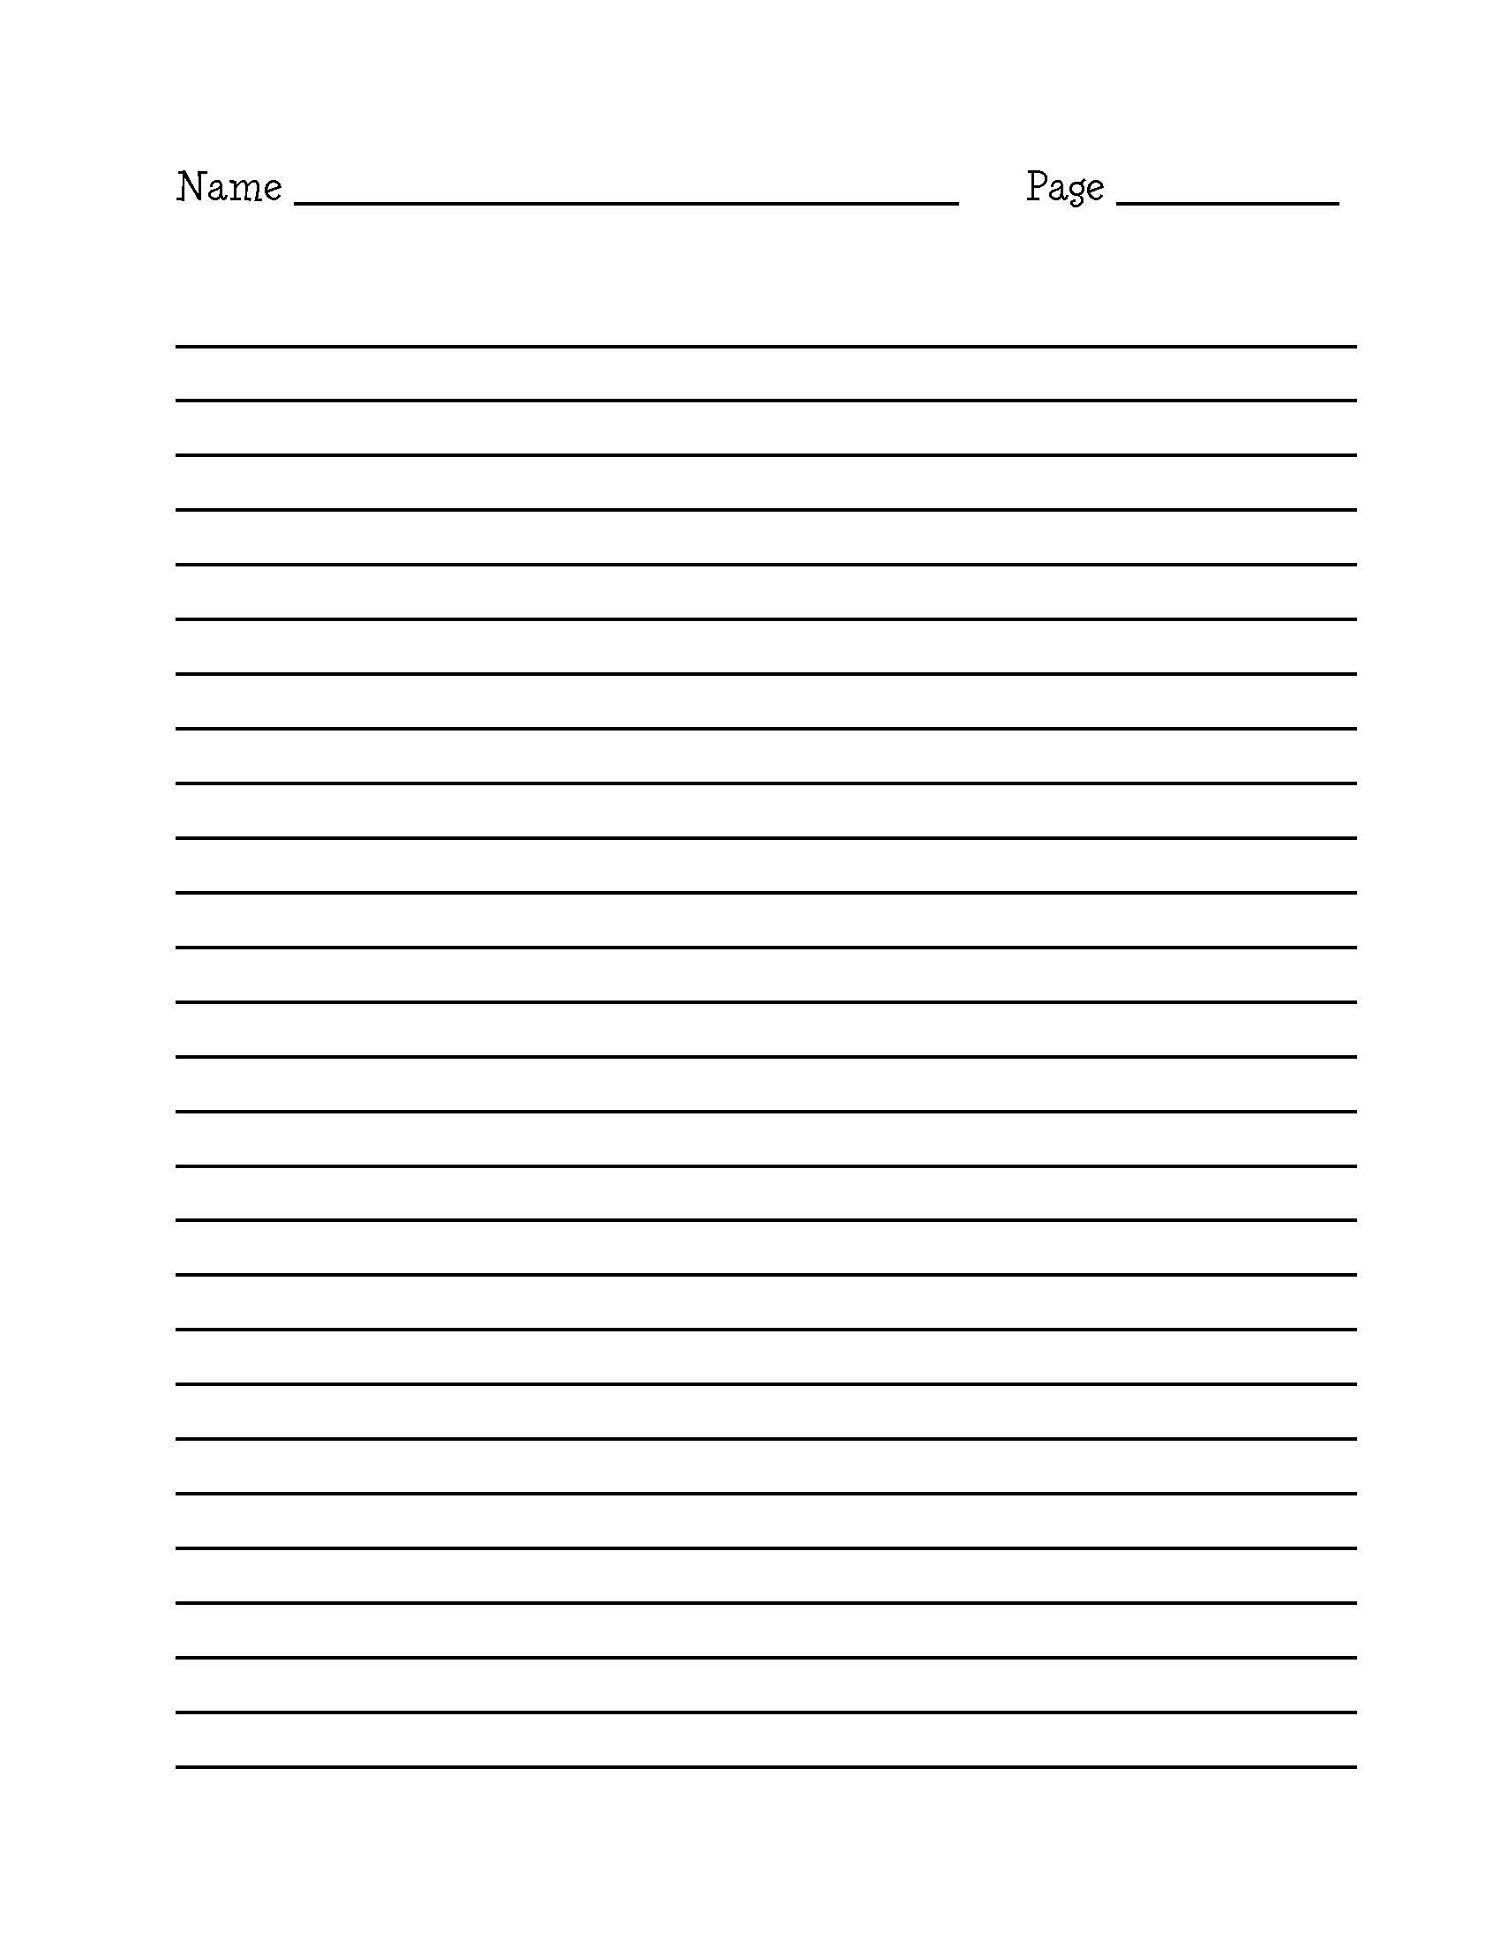 Lined Paper For Writing For Cute Writing Paper | Dear Joya  Lined Paper Word